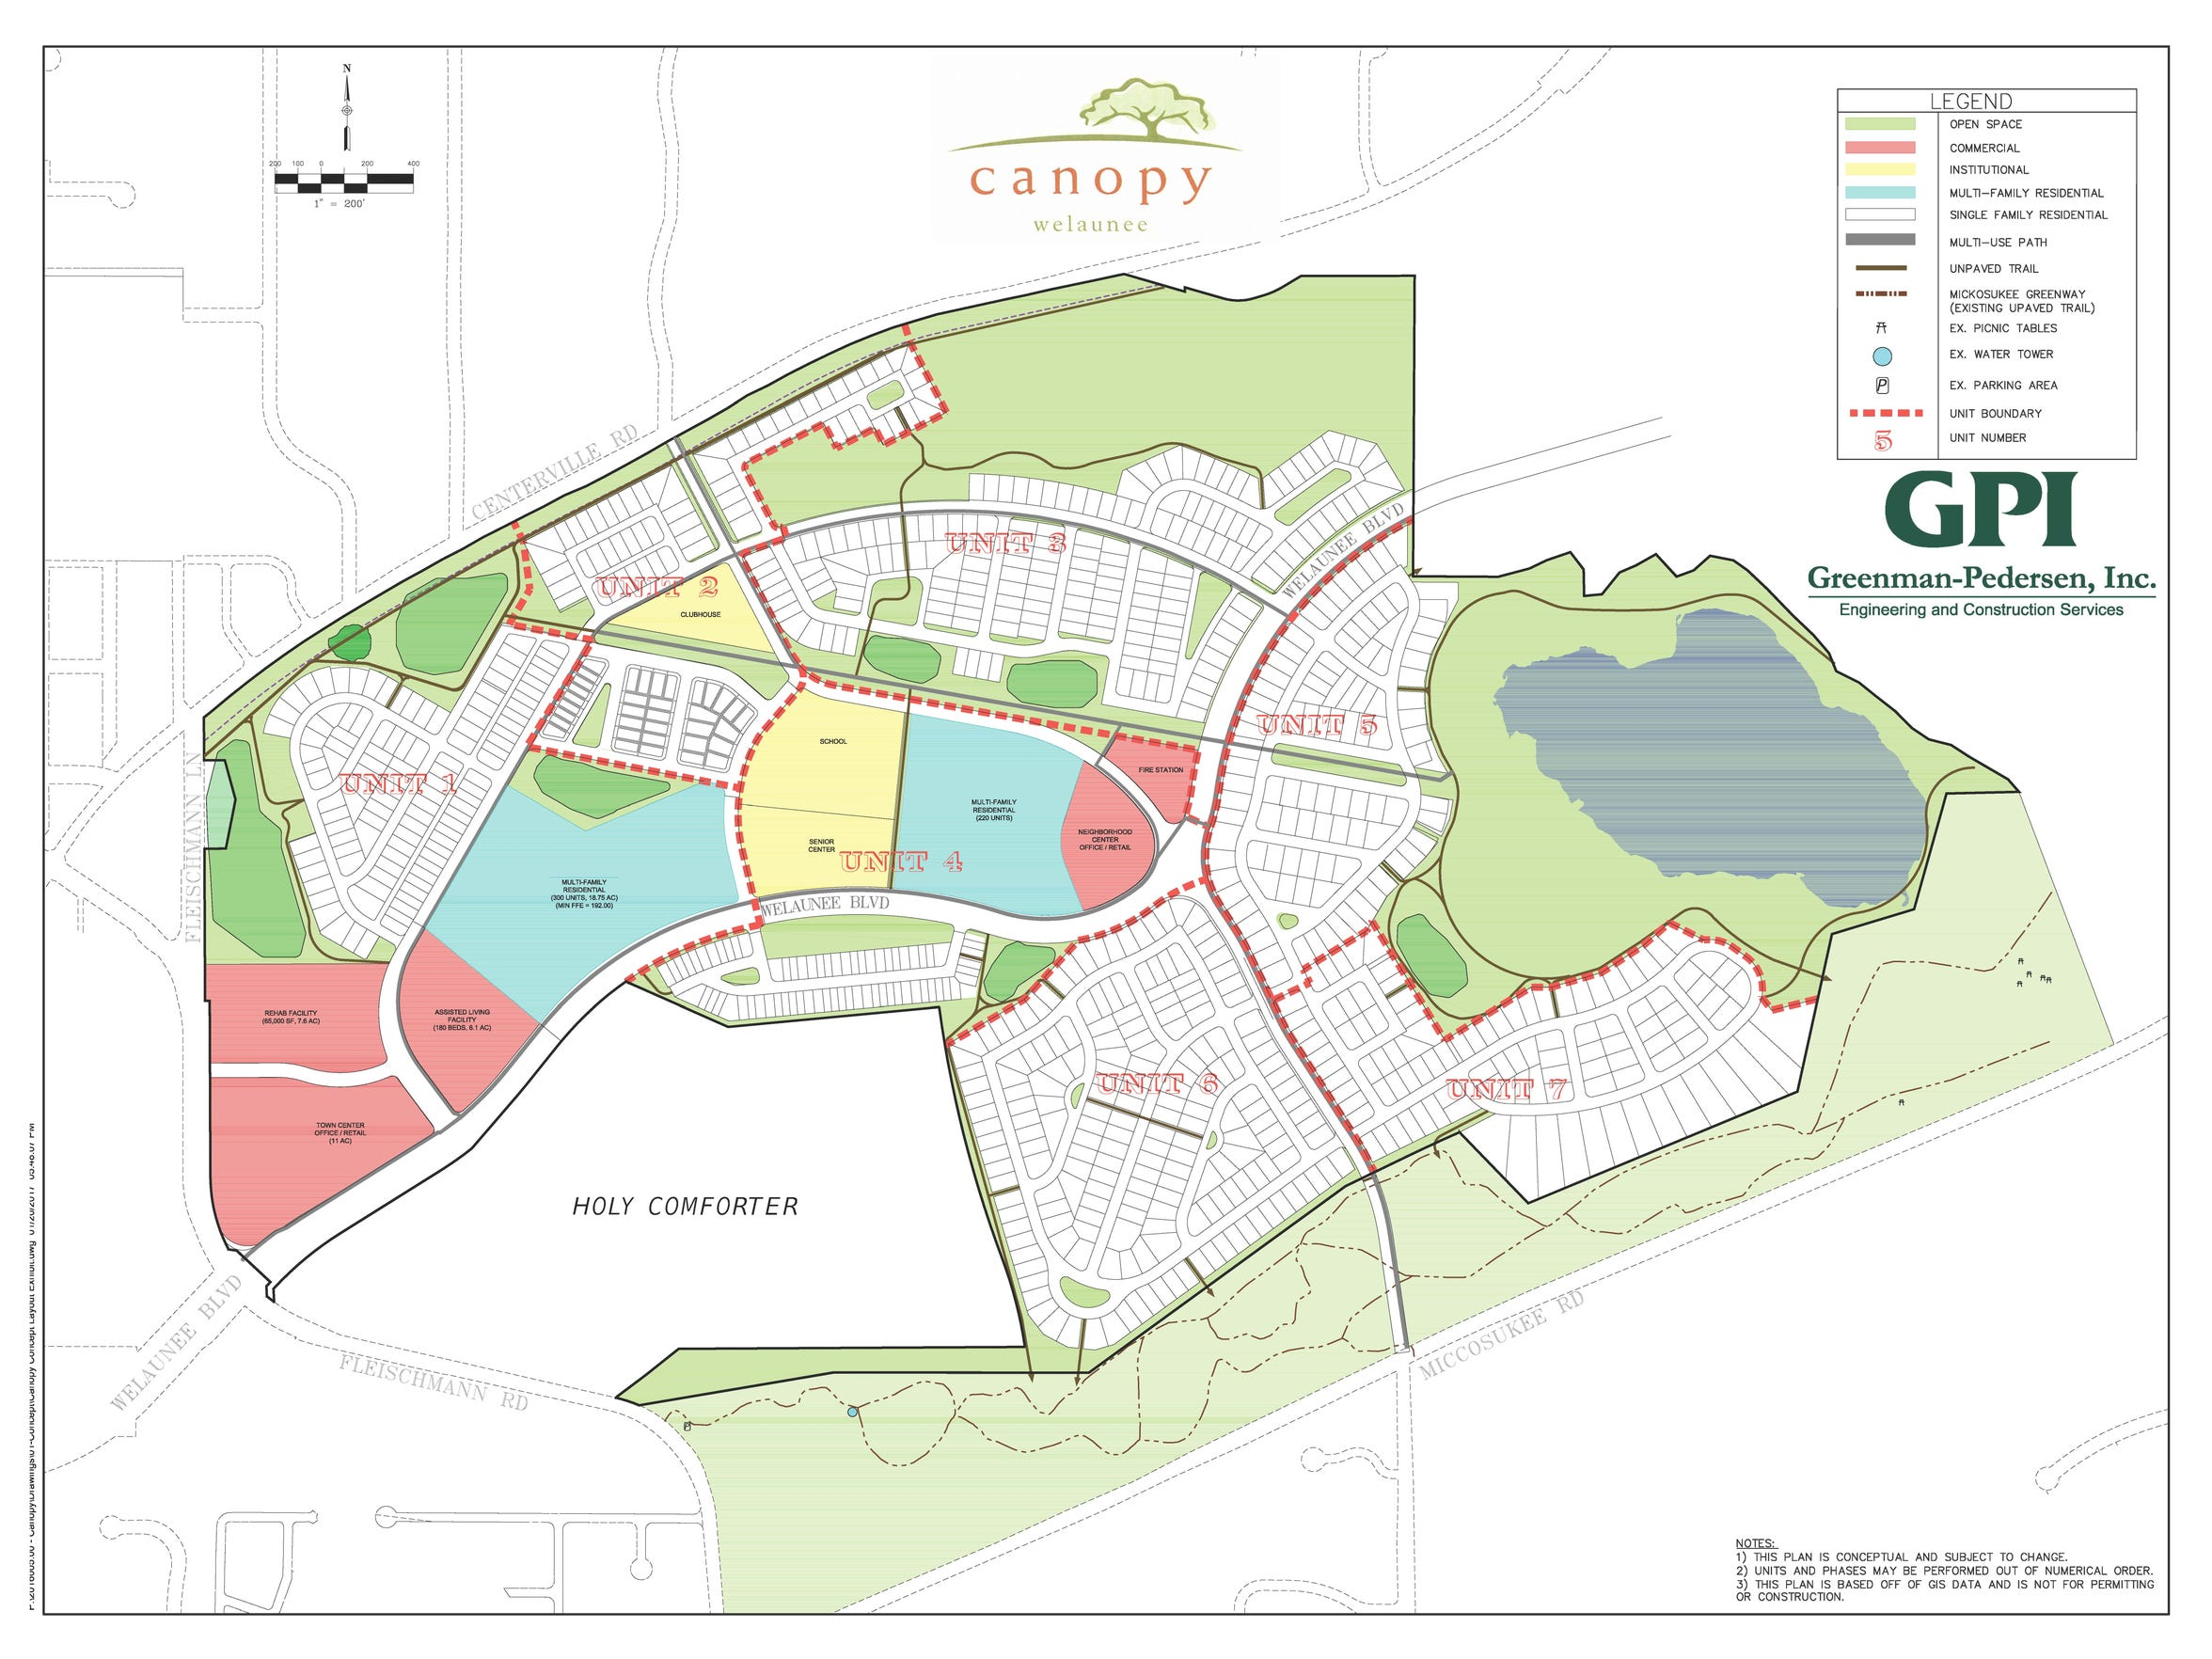 A conceptual map shows what's planned for the Canopy